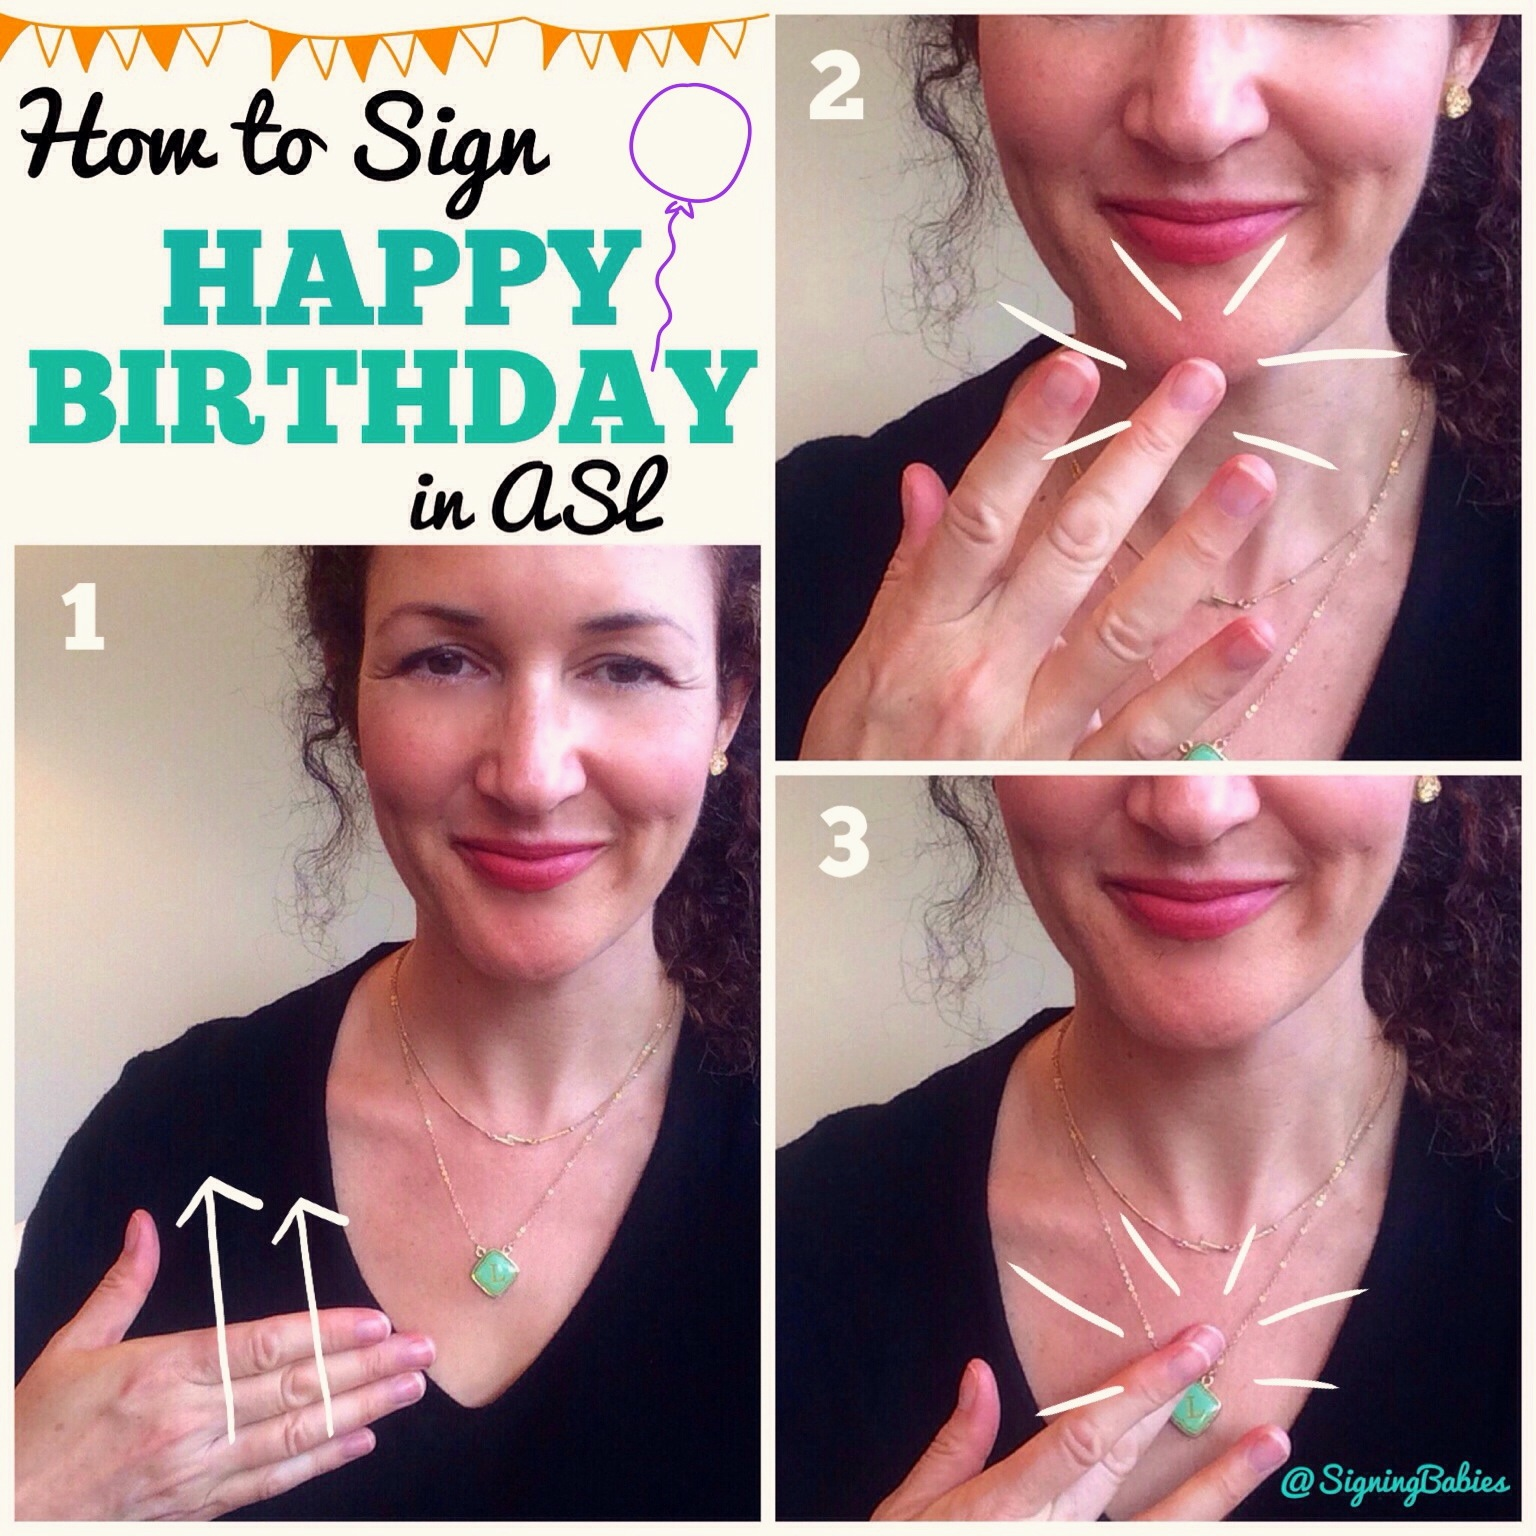 How To Sign Happy Birthday Growing Signs